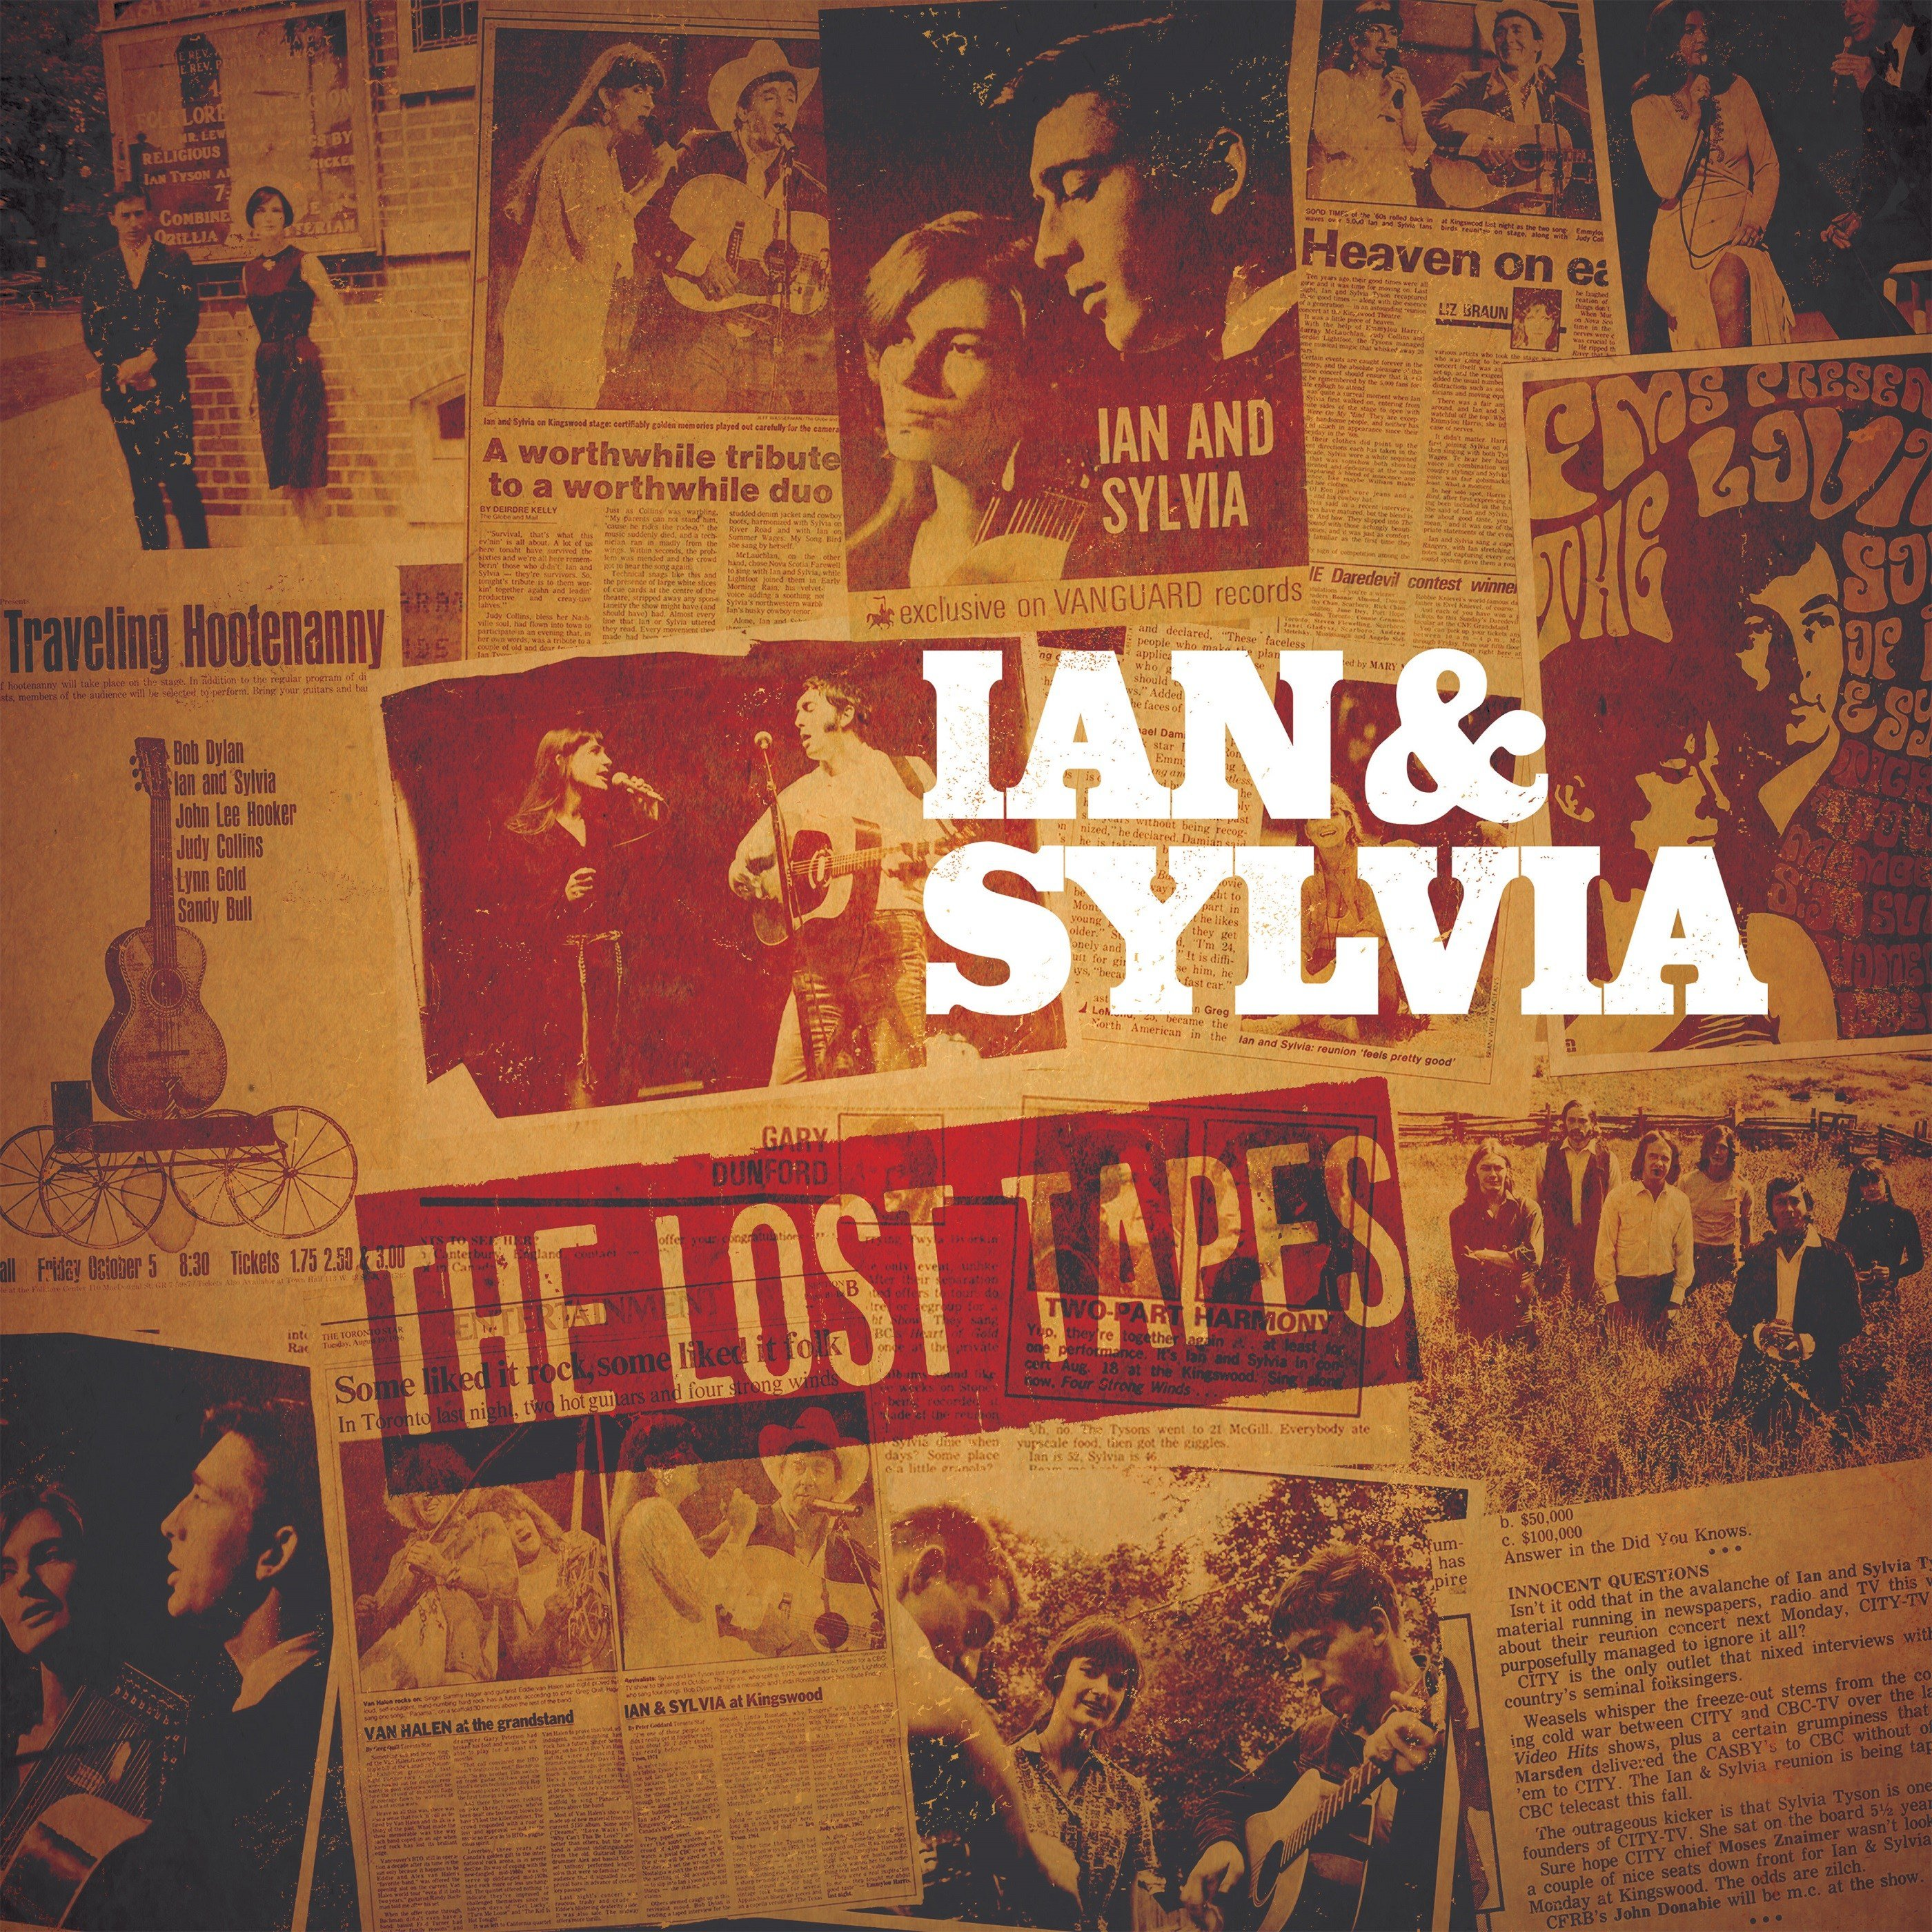 The Lost Tapes  of Ian and Sylvia and the Great Speckled Bird